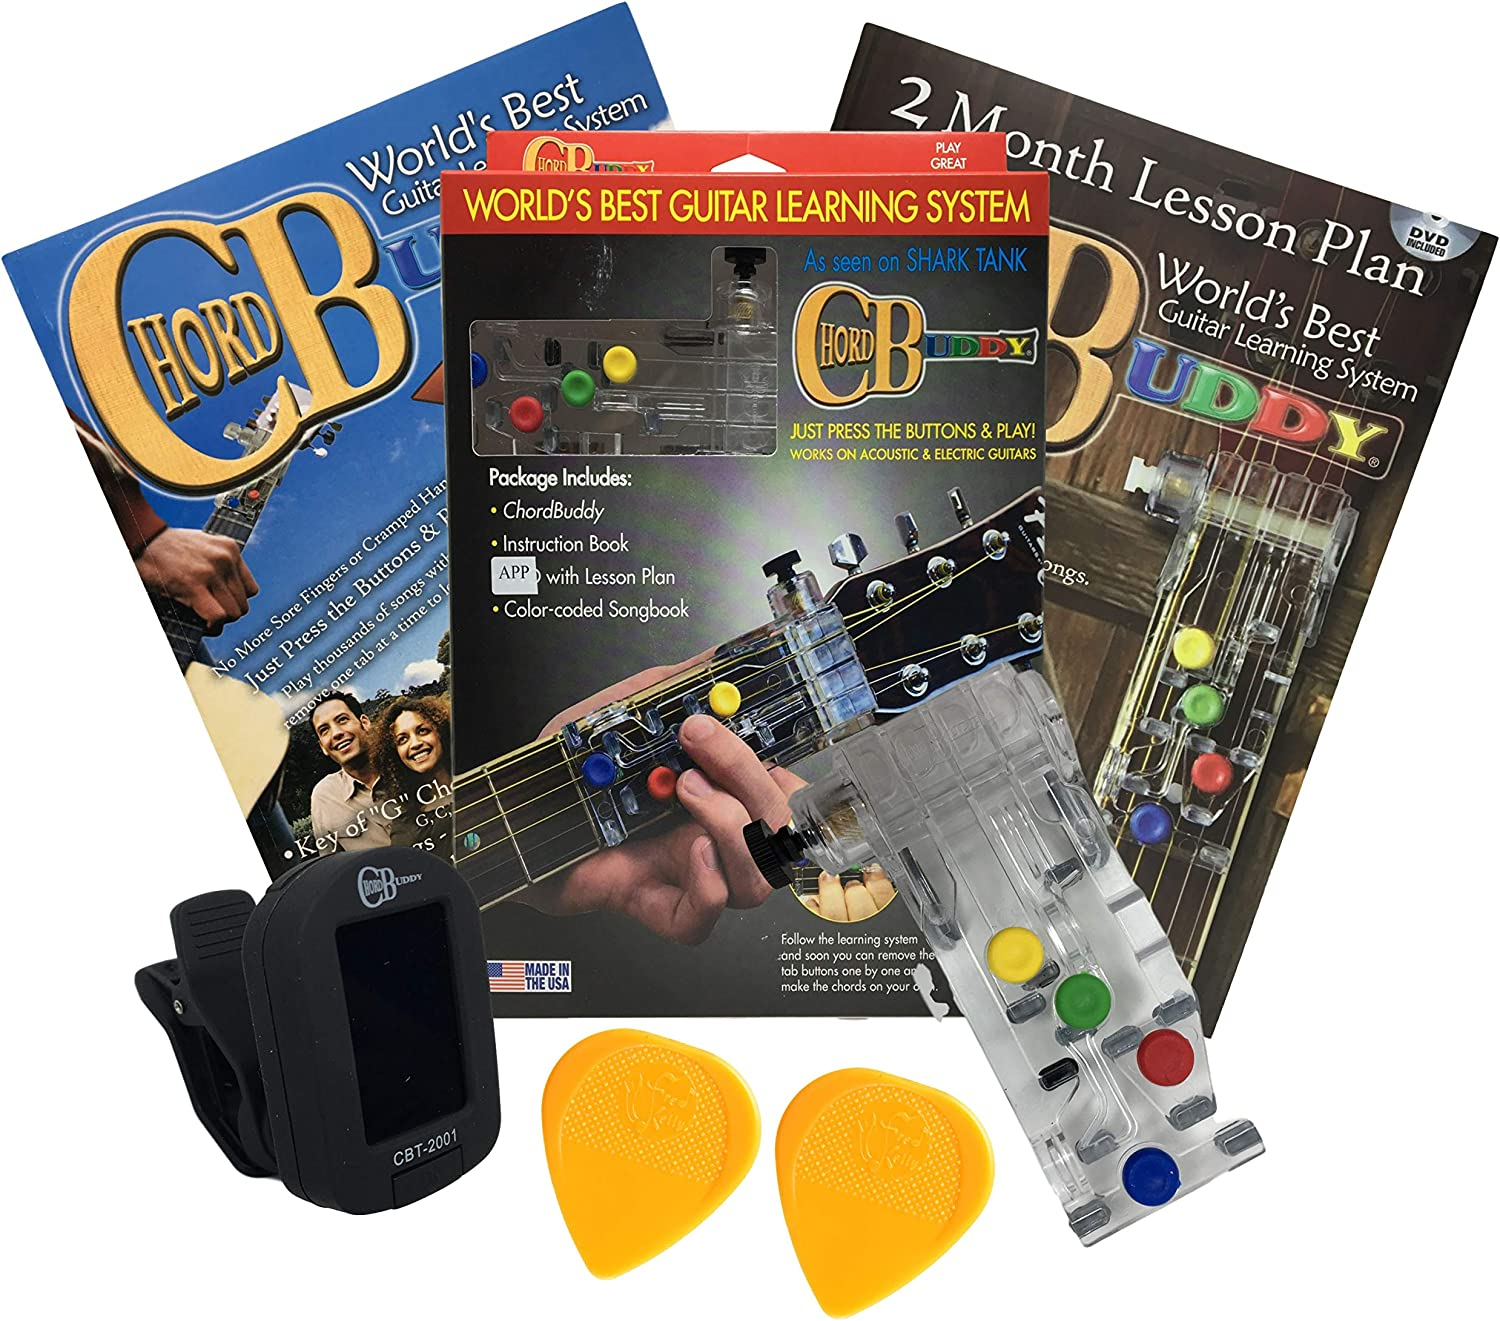 /— Bundle of Guitar Accessories for Beginners Clip-On Chromatic Tuner ChordBuddy Guitar Learning System Black 2 Pieces and Fred Kelly Delrin Flat Guitar Picks